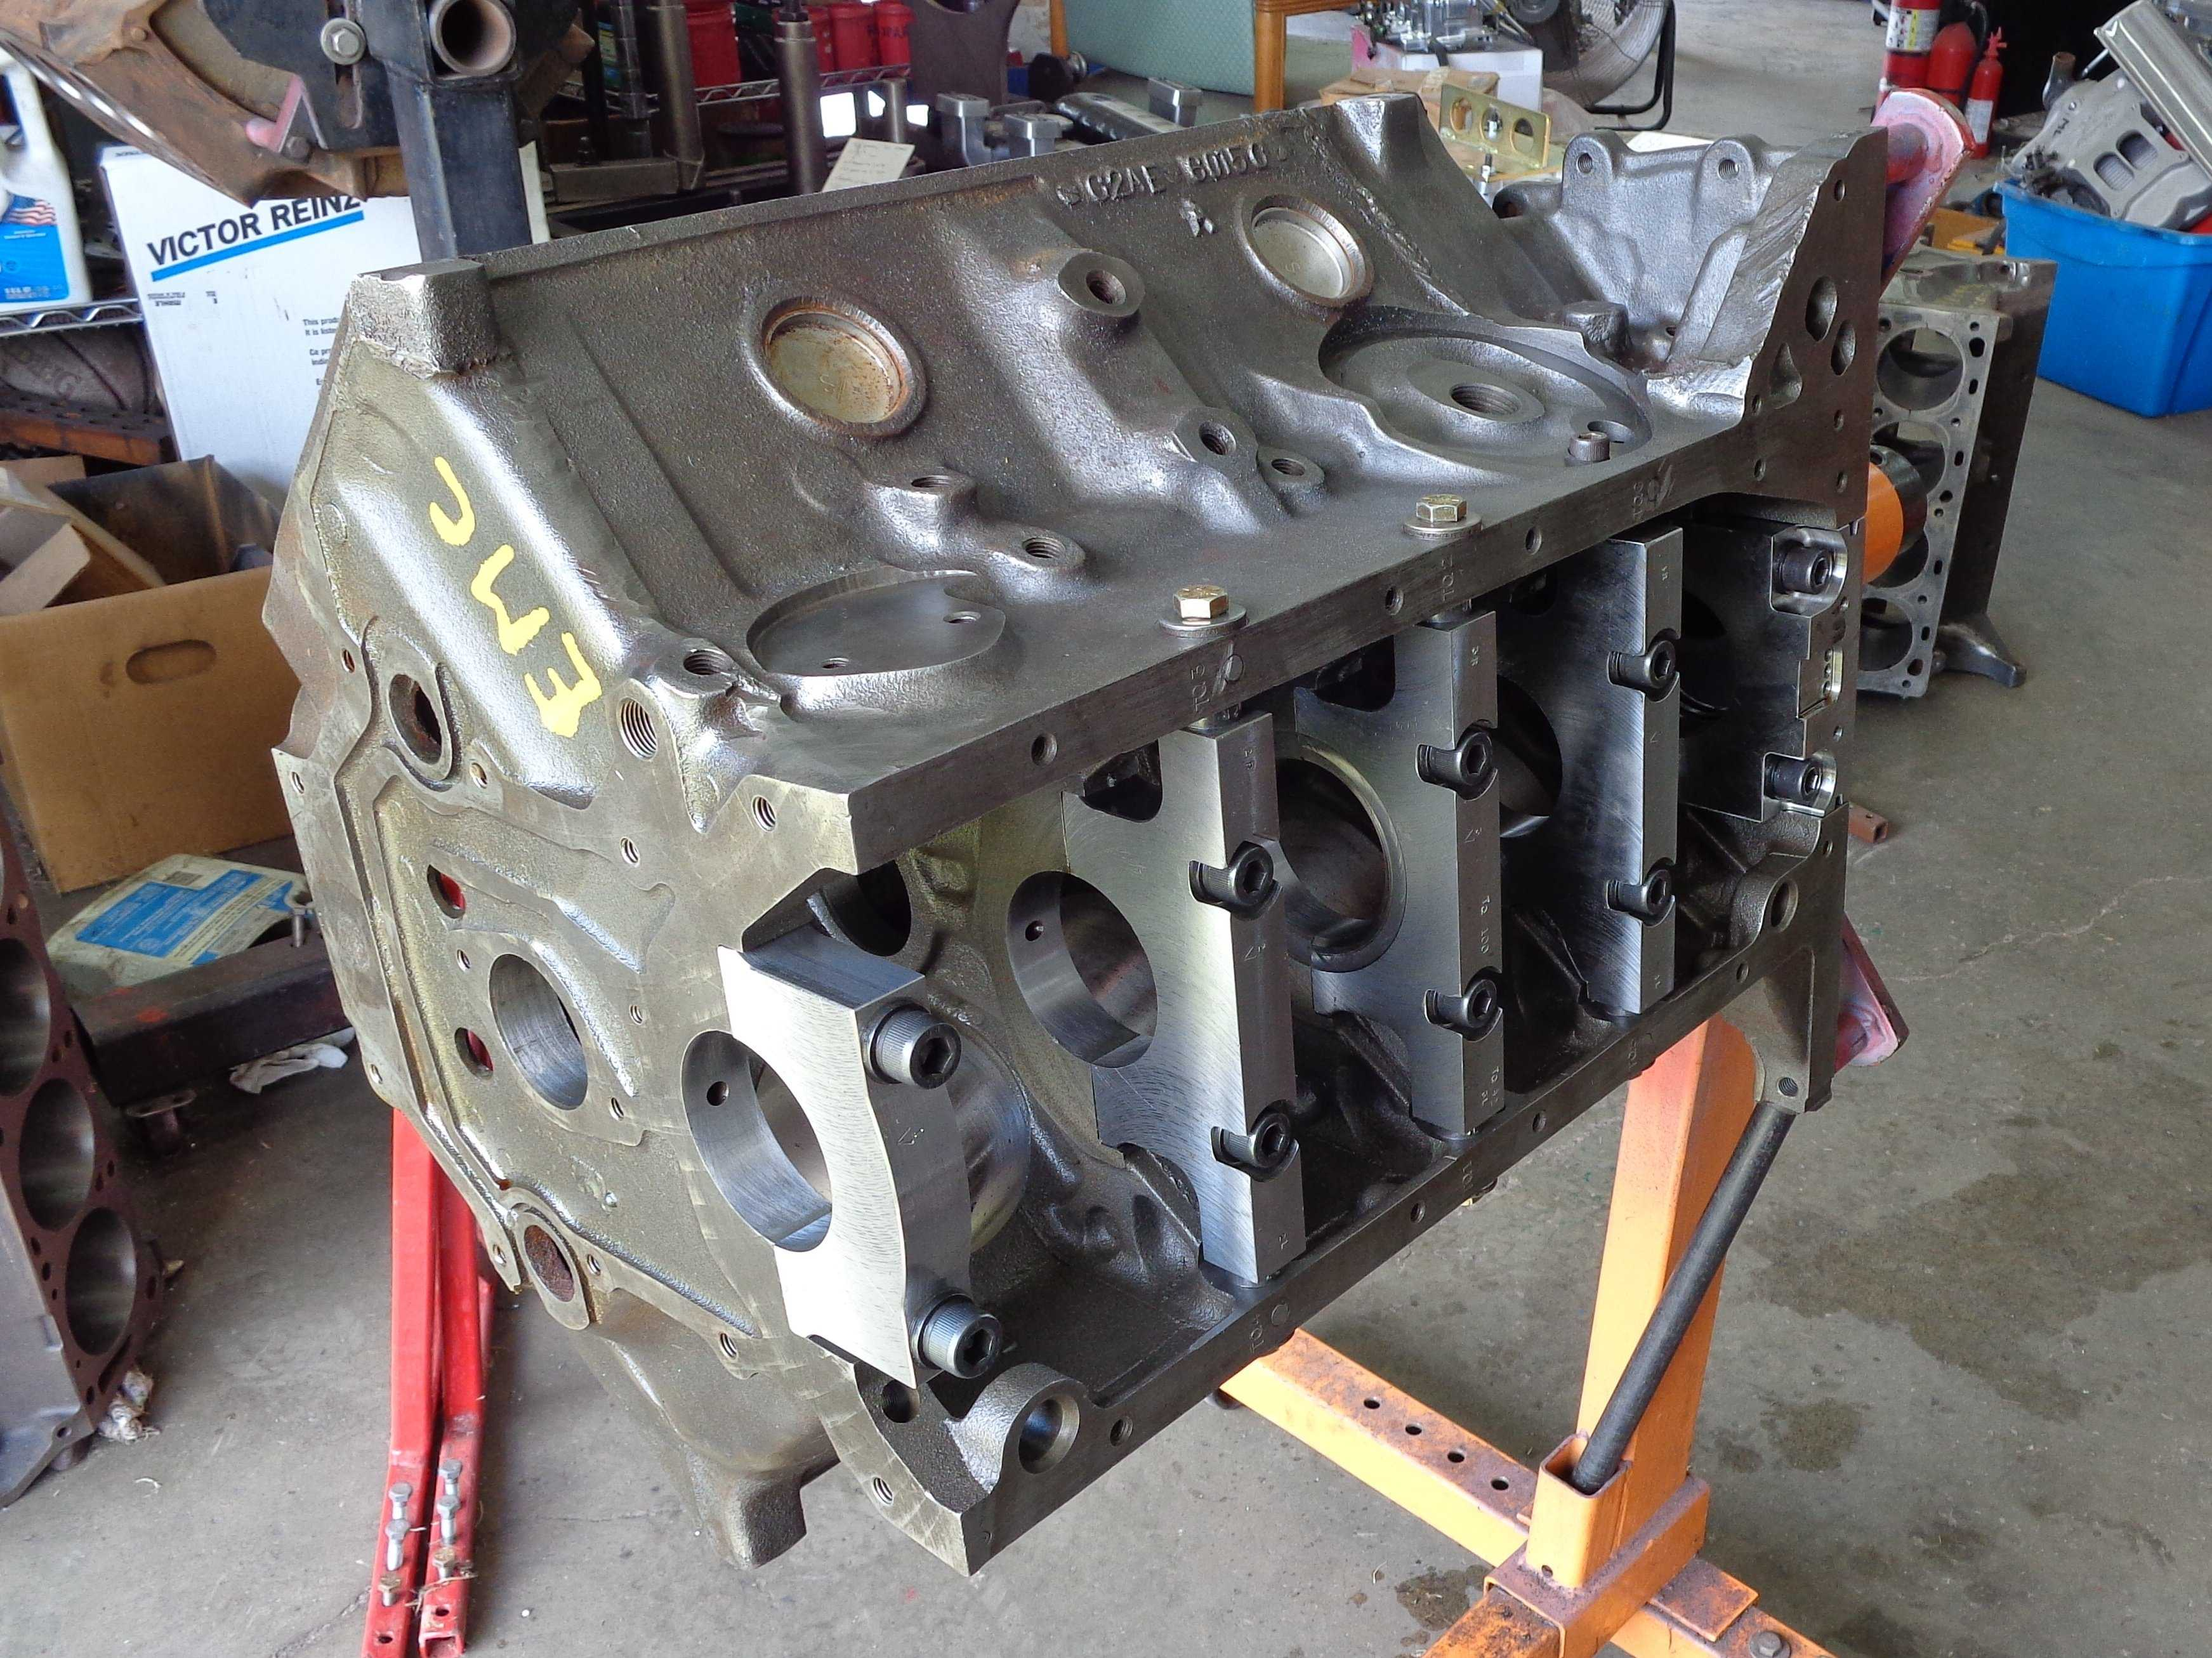 Sneak Peek: Ted Eaton's 2018 Engine Masters Challenge Engine is a 600HP Y-Block!